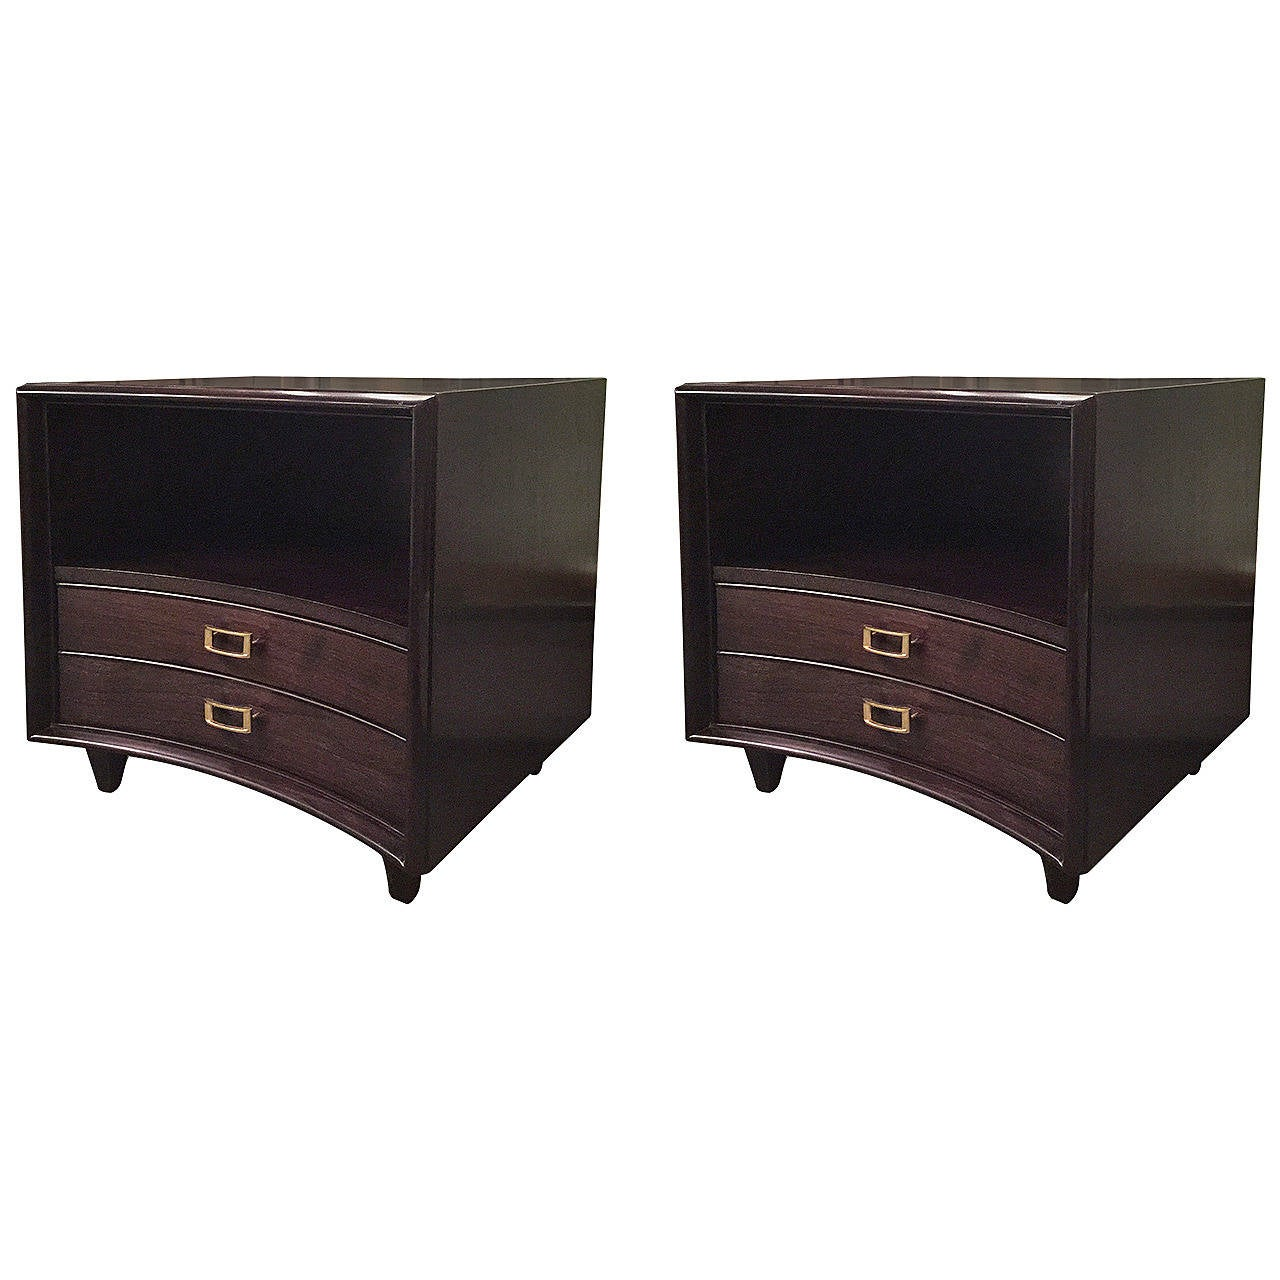 Pair of Ebonized Paul Frankl Nightstands or Chests 1